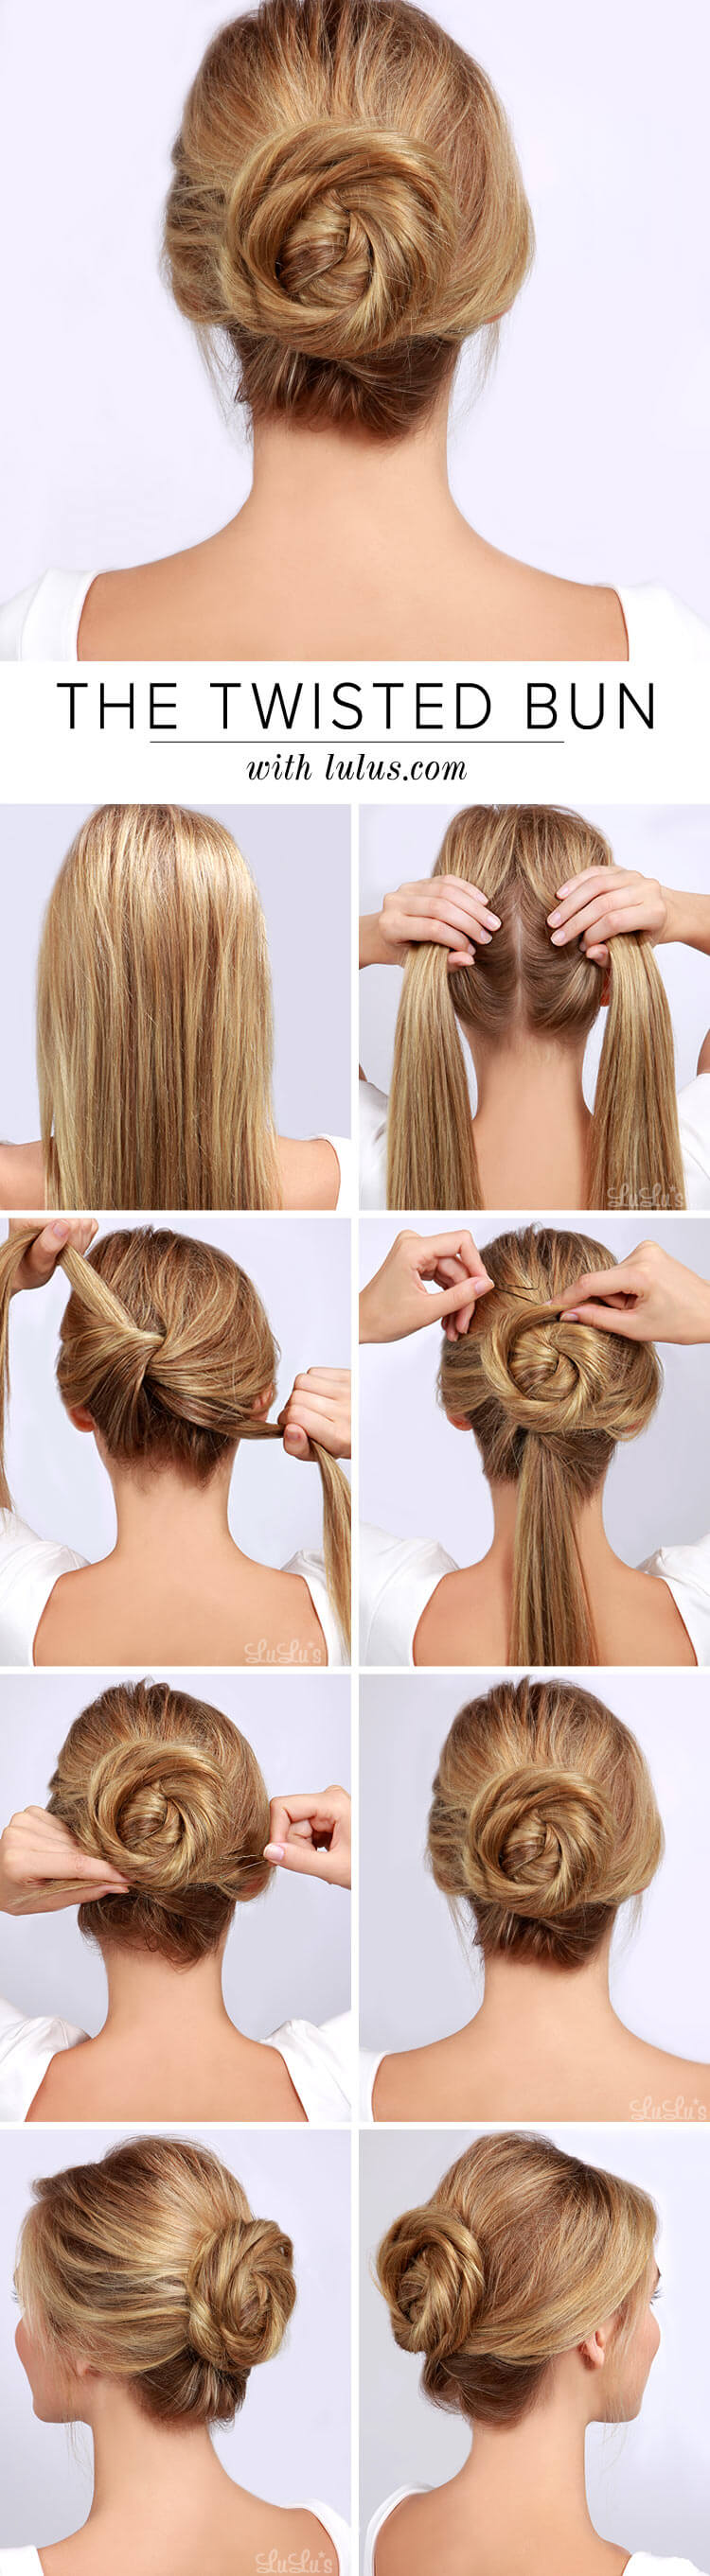 easy twist bun hairstyling